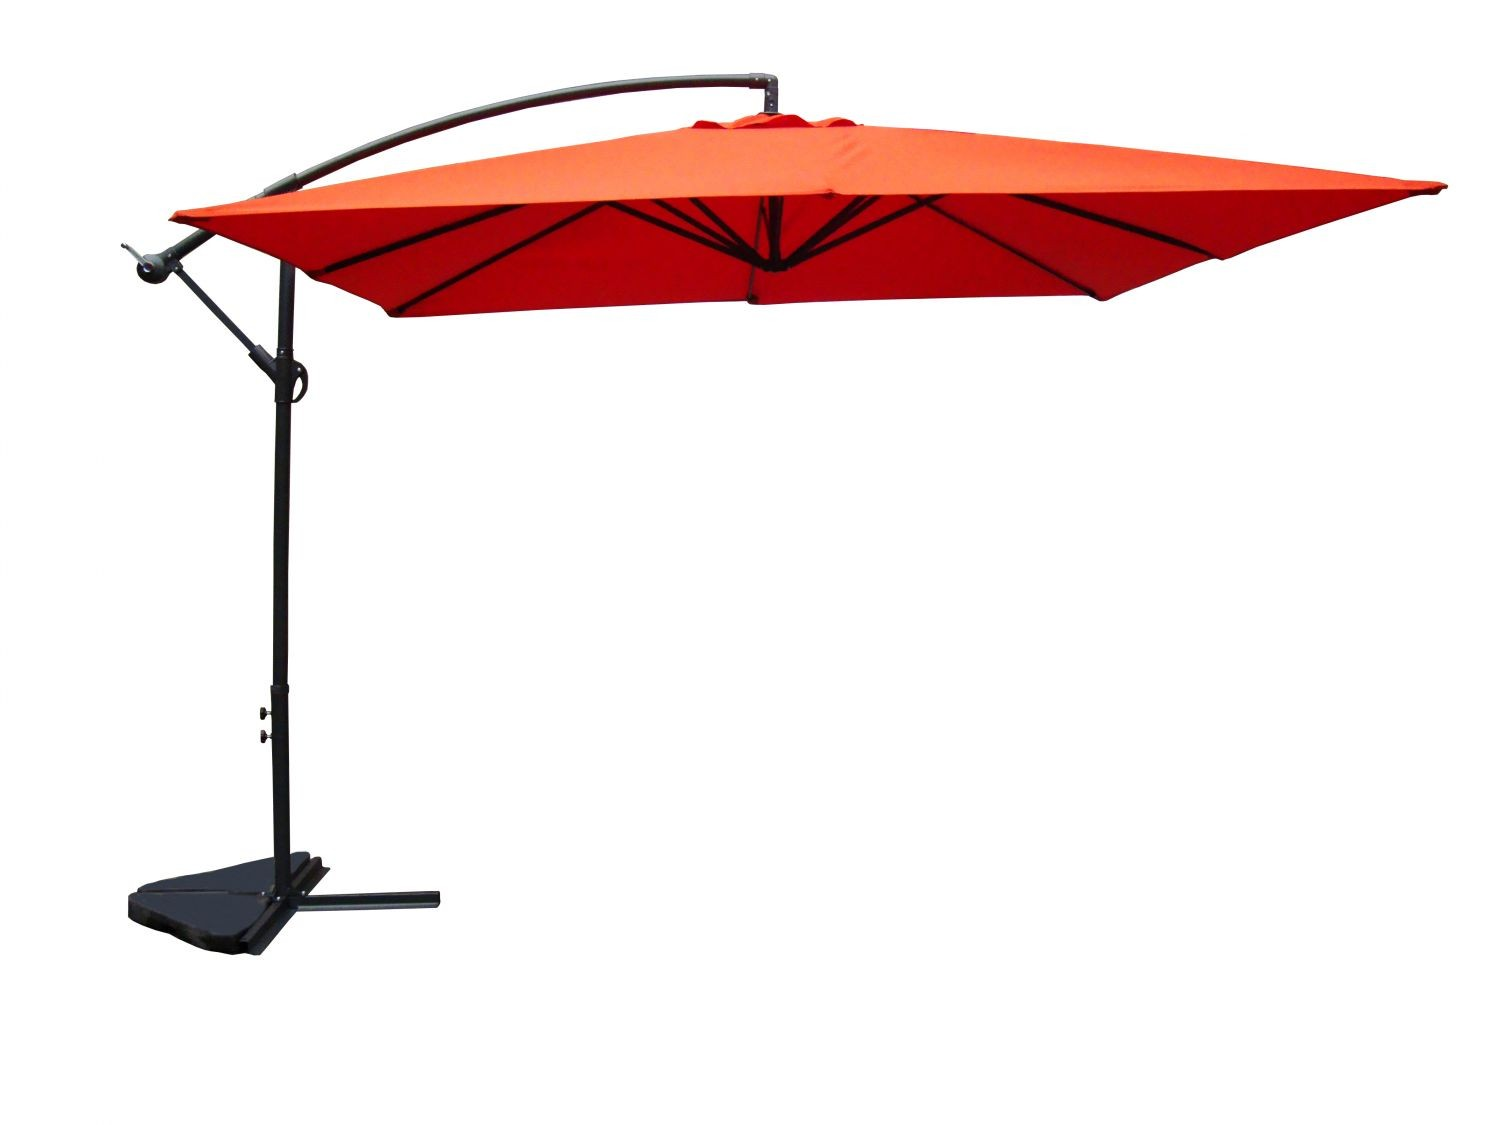 umloti terracotta parasol d port 3x3 m parasols. Black Bedroom Furniture Sets. Home Design Ideas